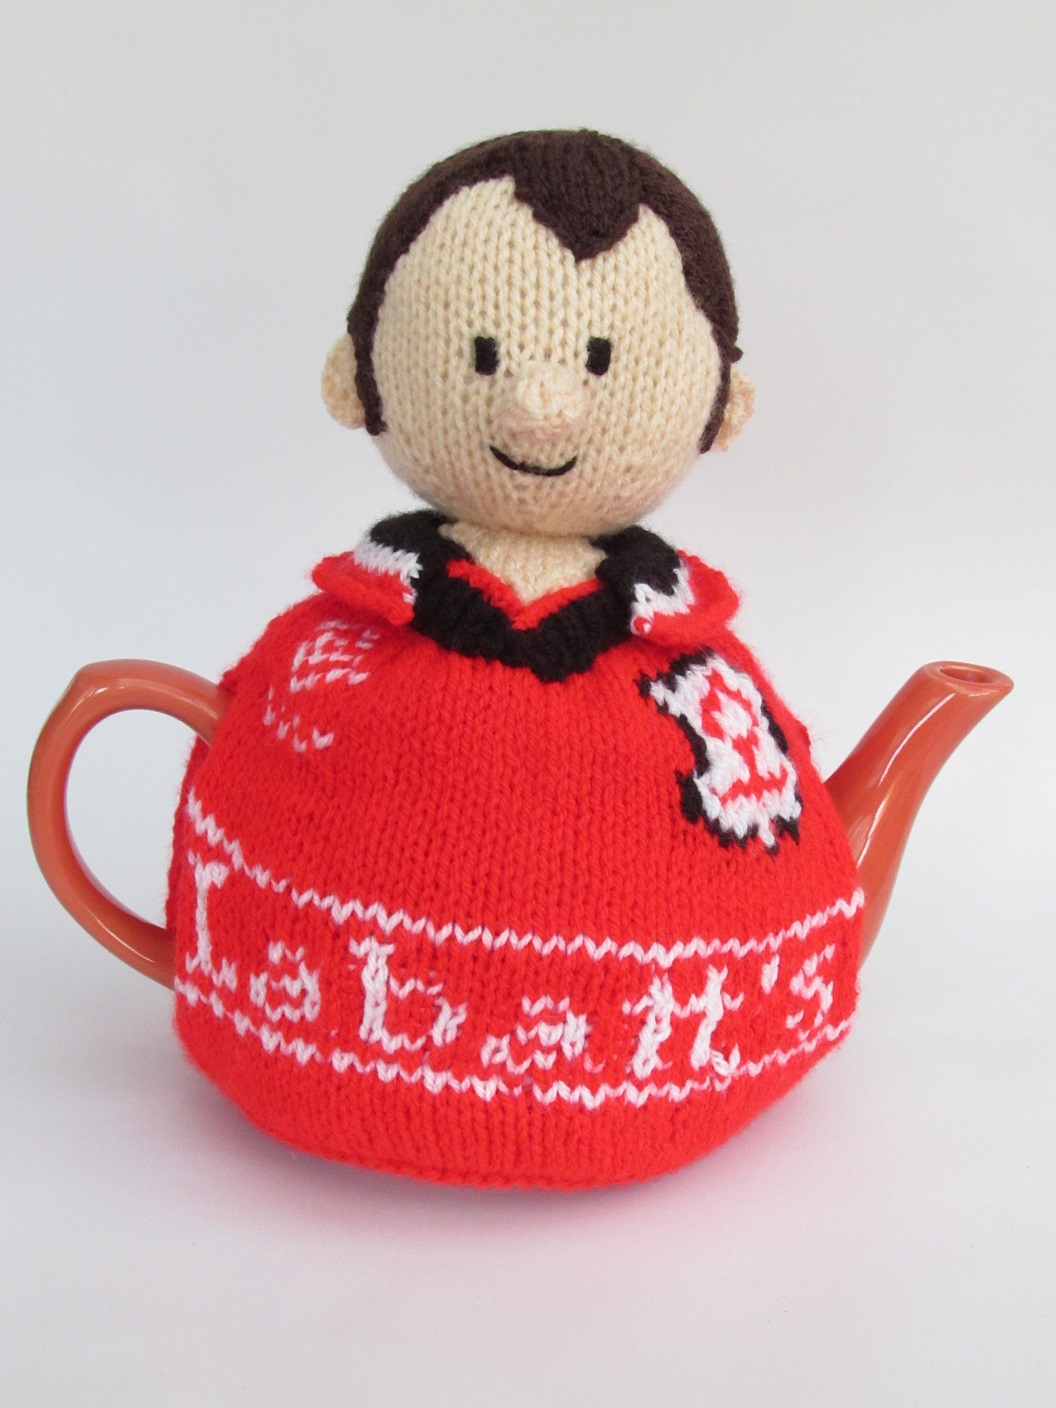 Knitting Needles Nottingham : Tennis player tea cosy knitting pattern